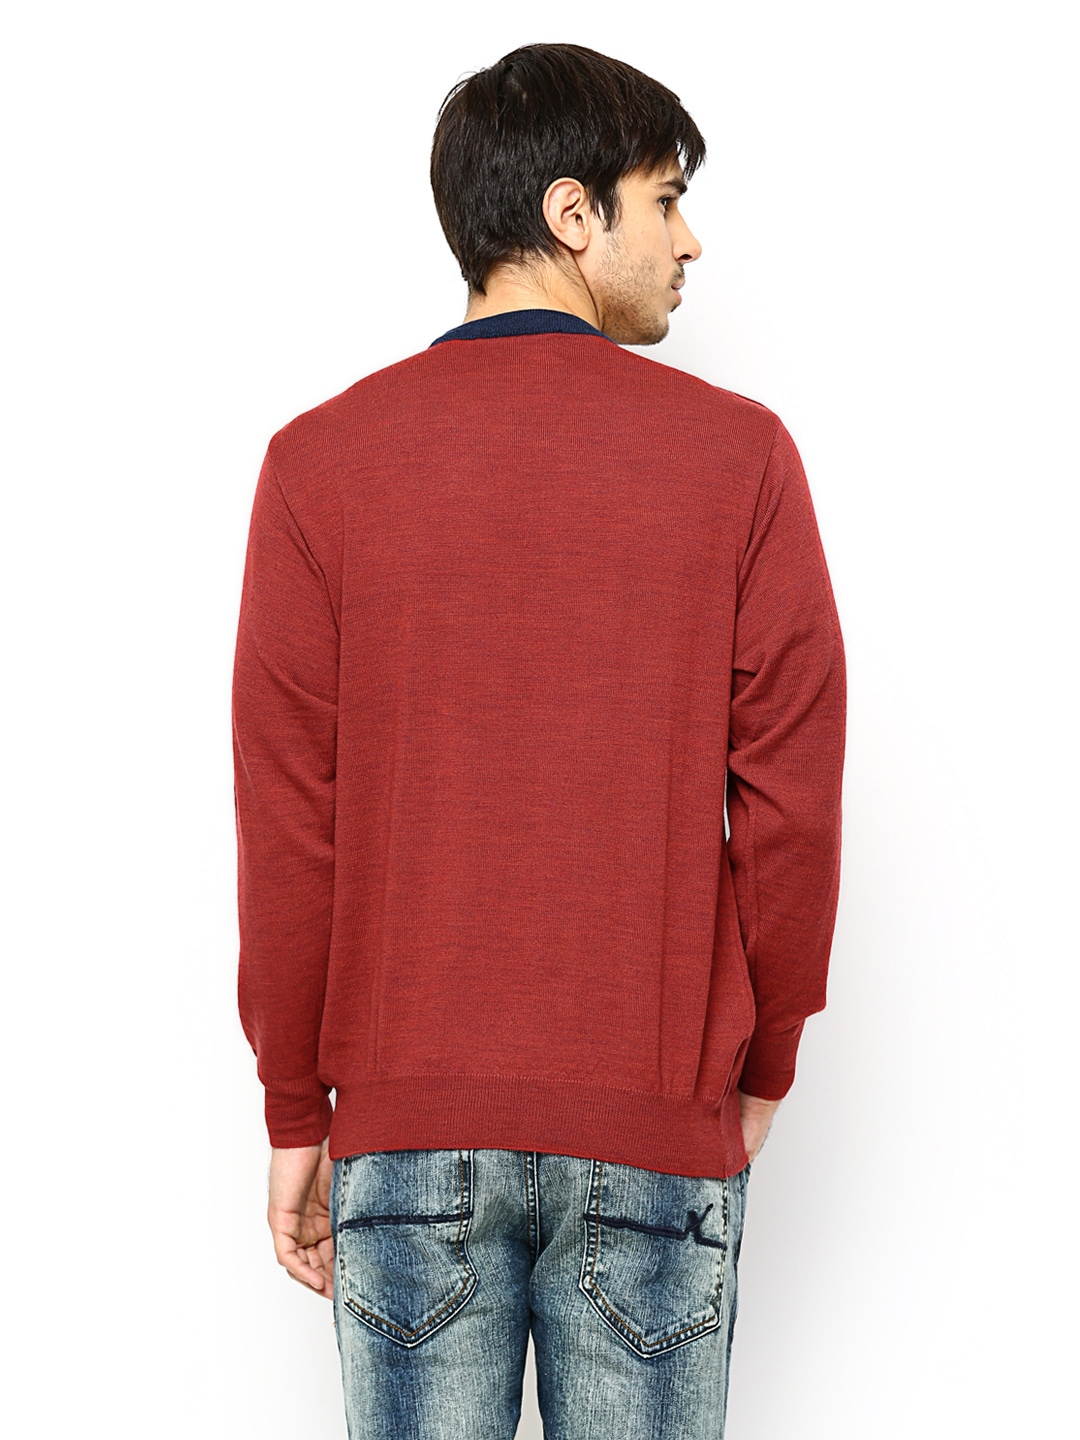 5440a1d7dd11 Buy Monte Carlo Men Red Woollen Sweater 2984943 for men online in india on  Myntra at Yebhi.com